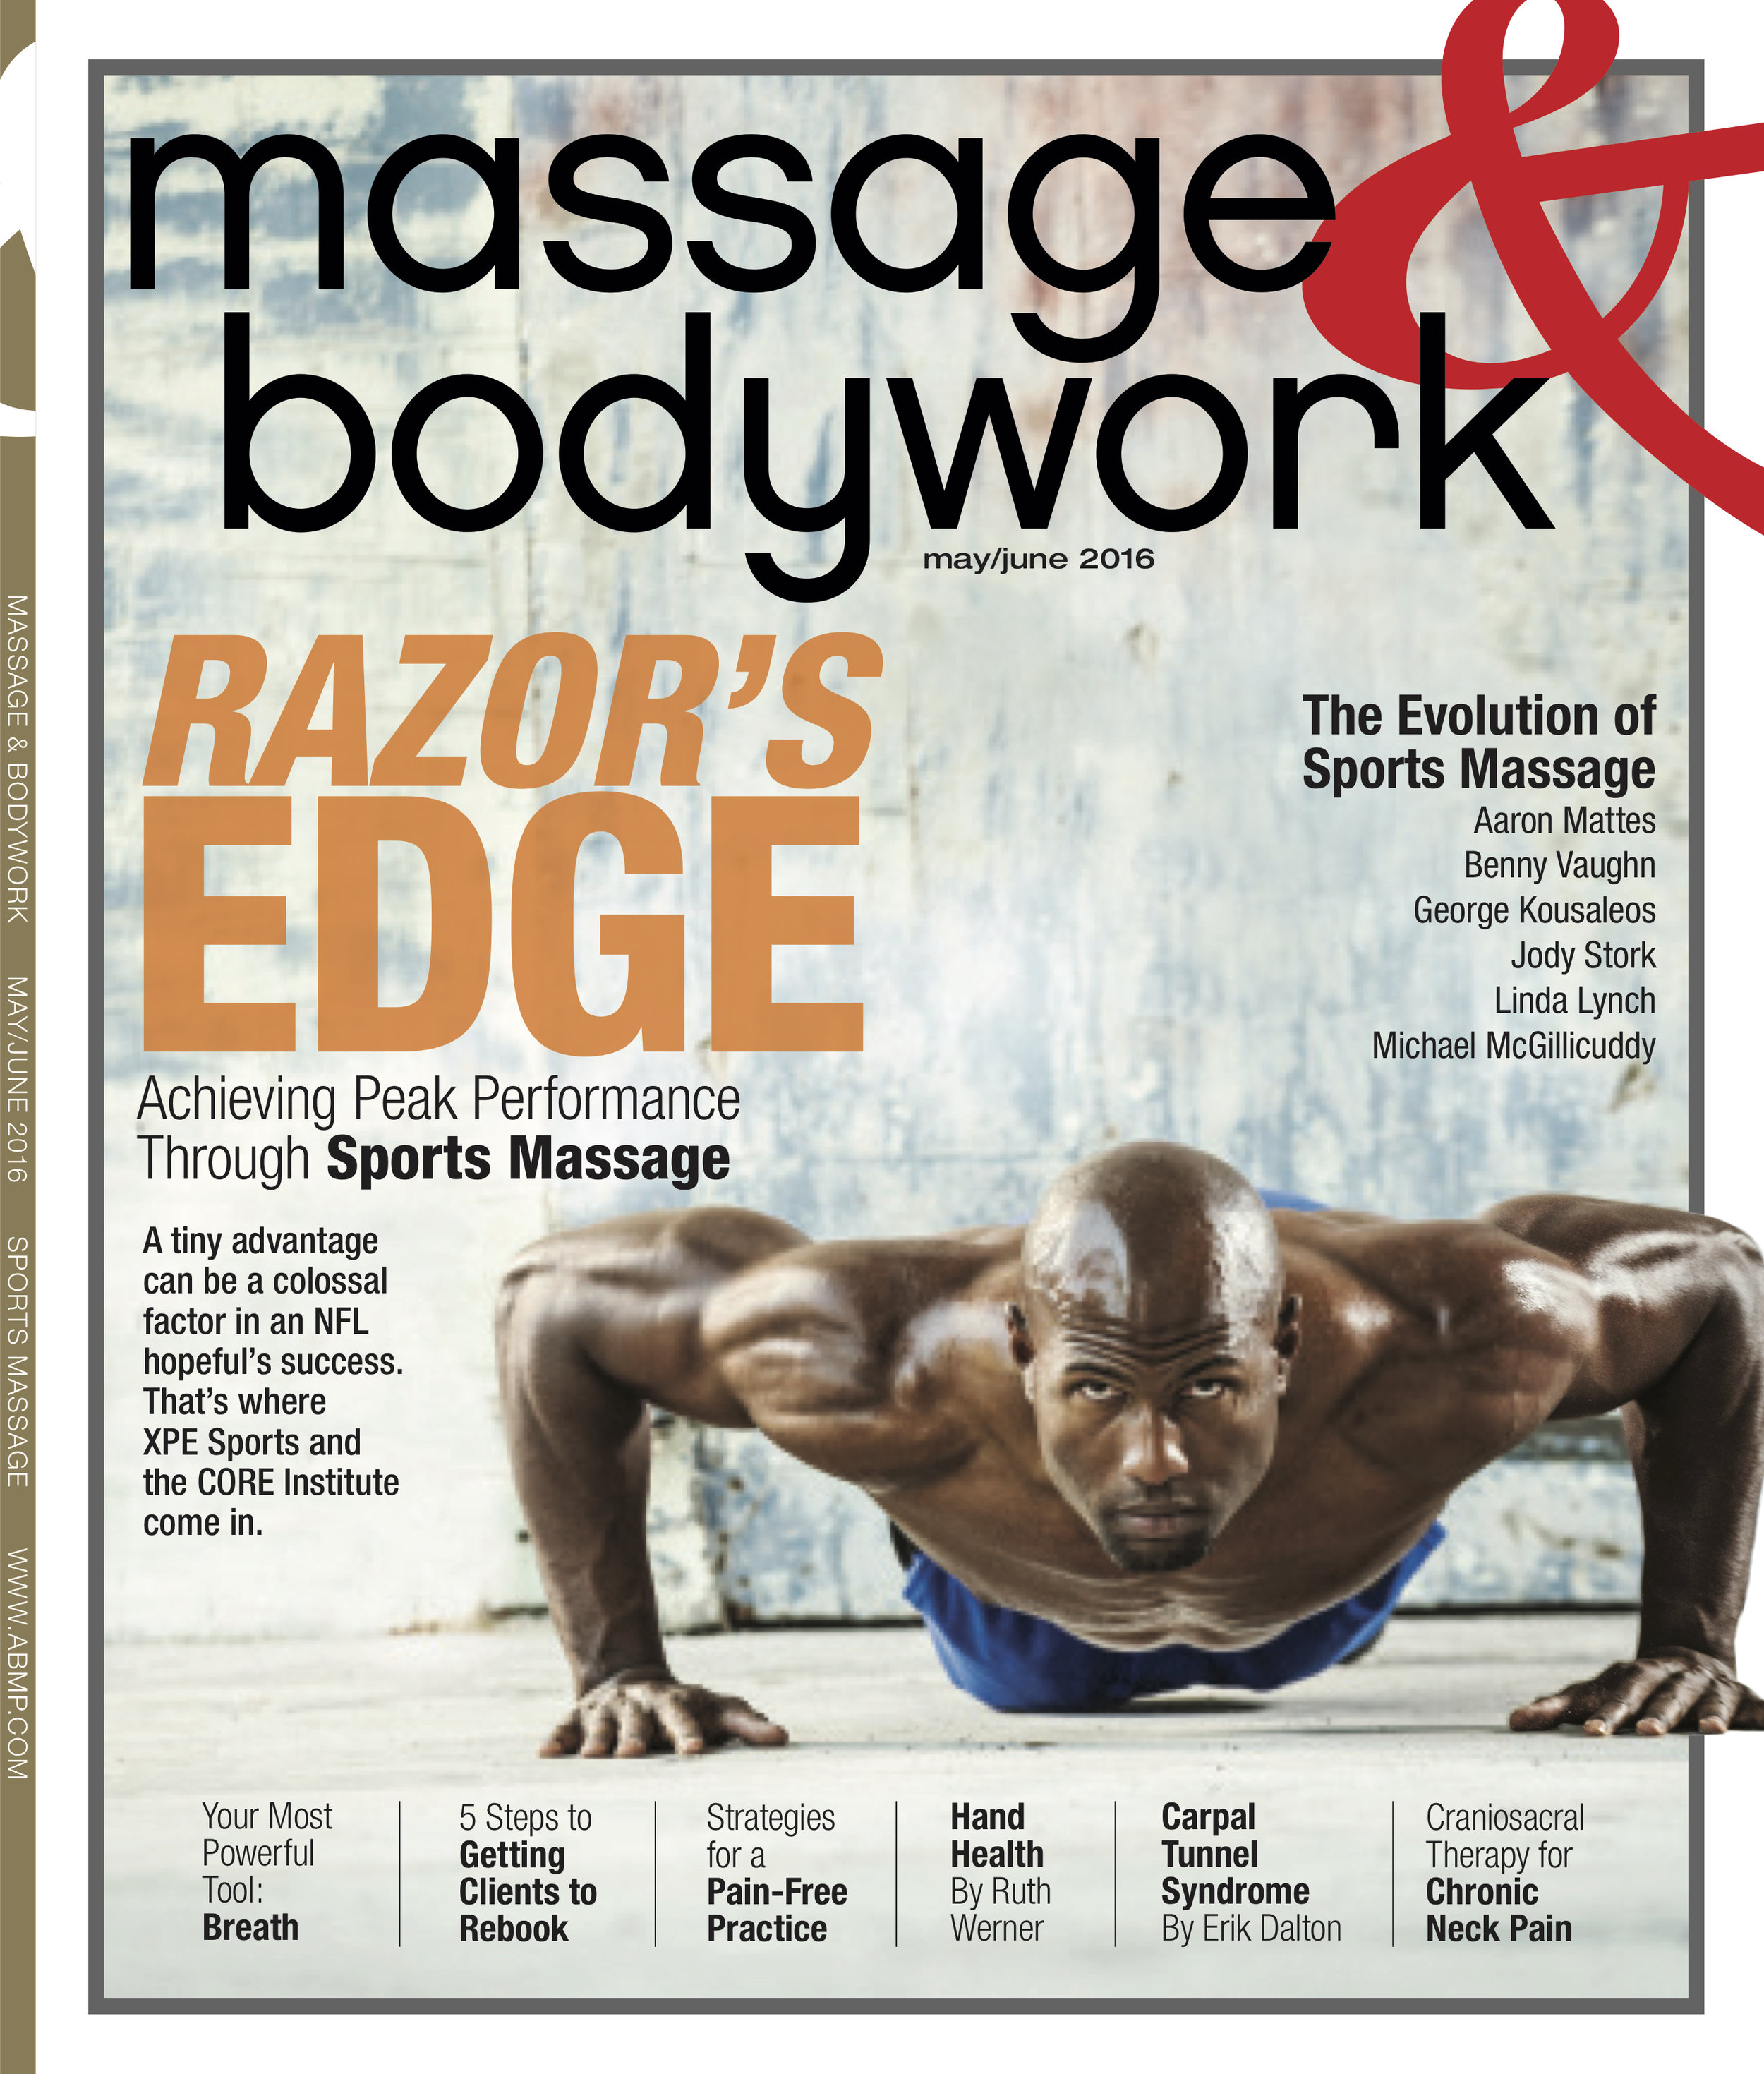 """Breath: Your Most Powerful Tool""  David M. Lobenstine  Massage & Bodywork  May/June 2016"